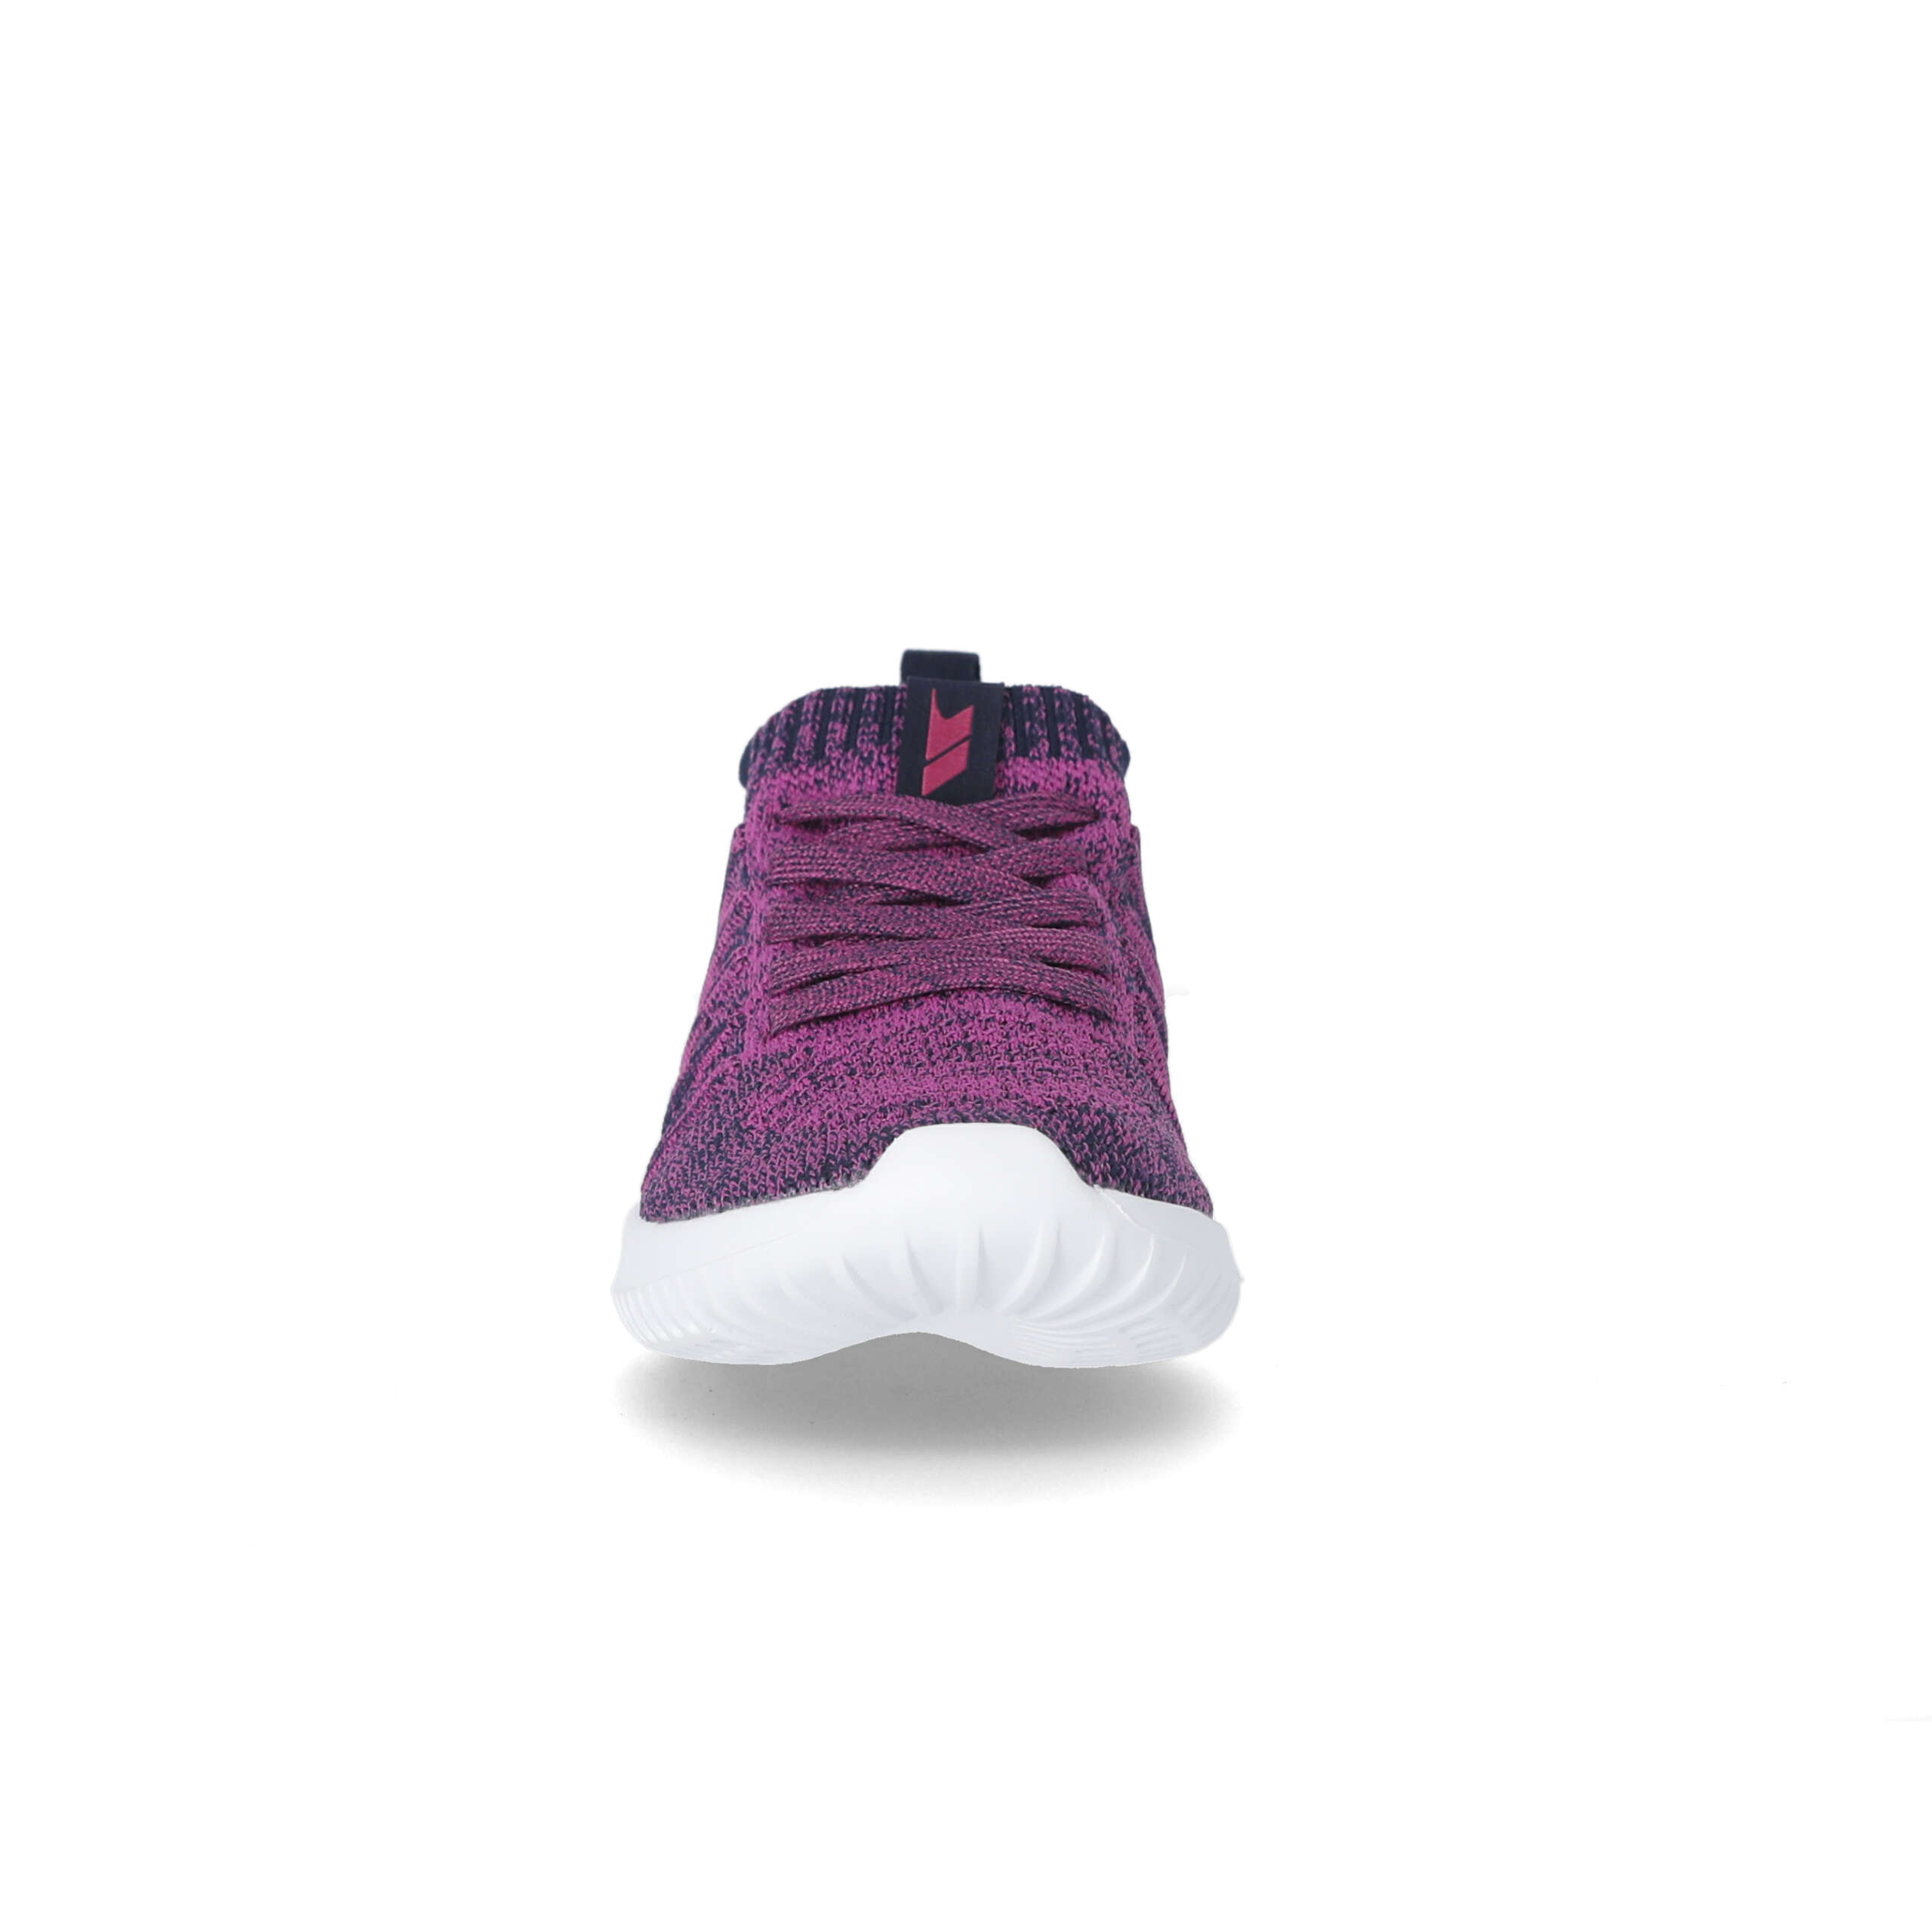 Trespass-Womens-Gym-Running-Trainers-Memory-Foam-Walking-Shoes-Alexis thumbnail 6